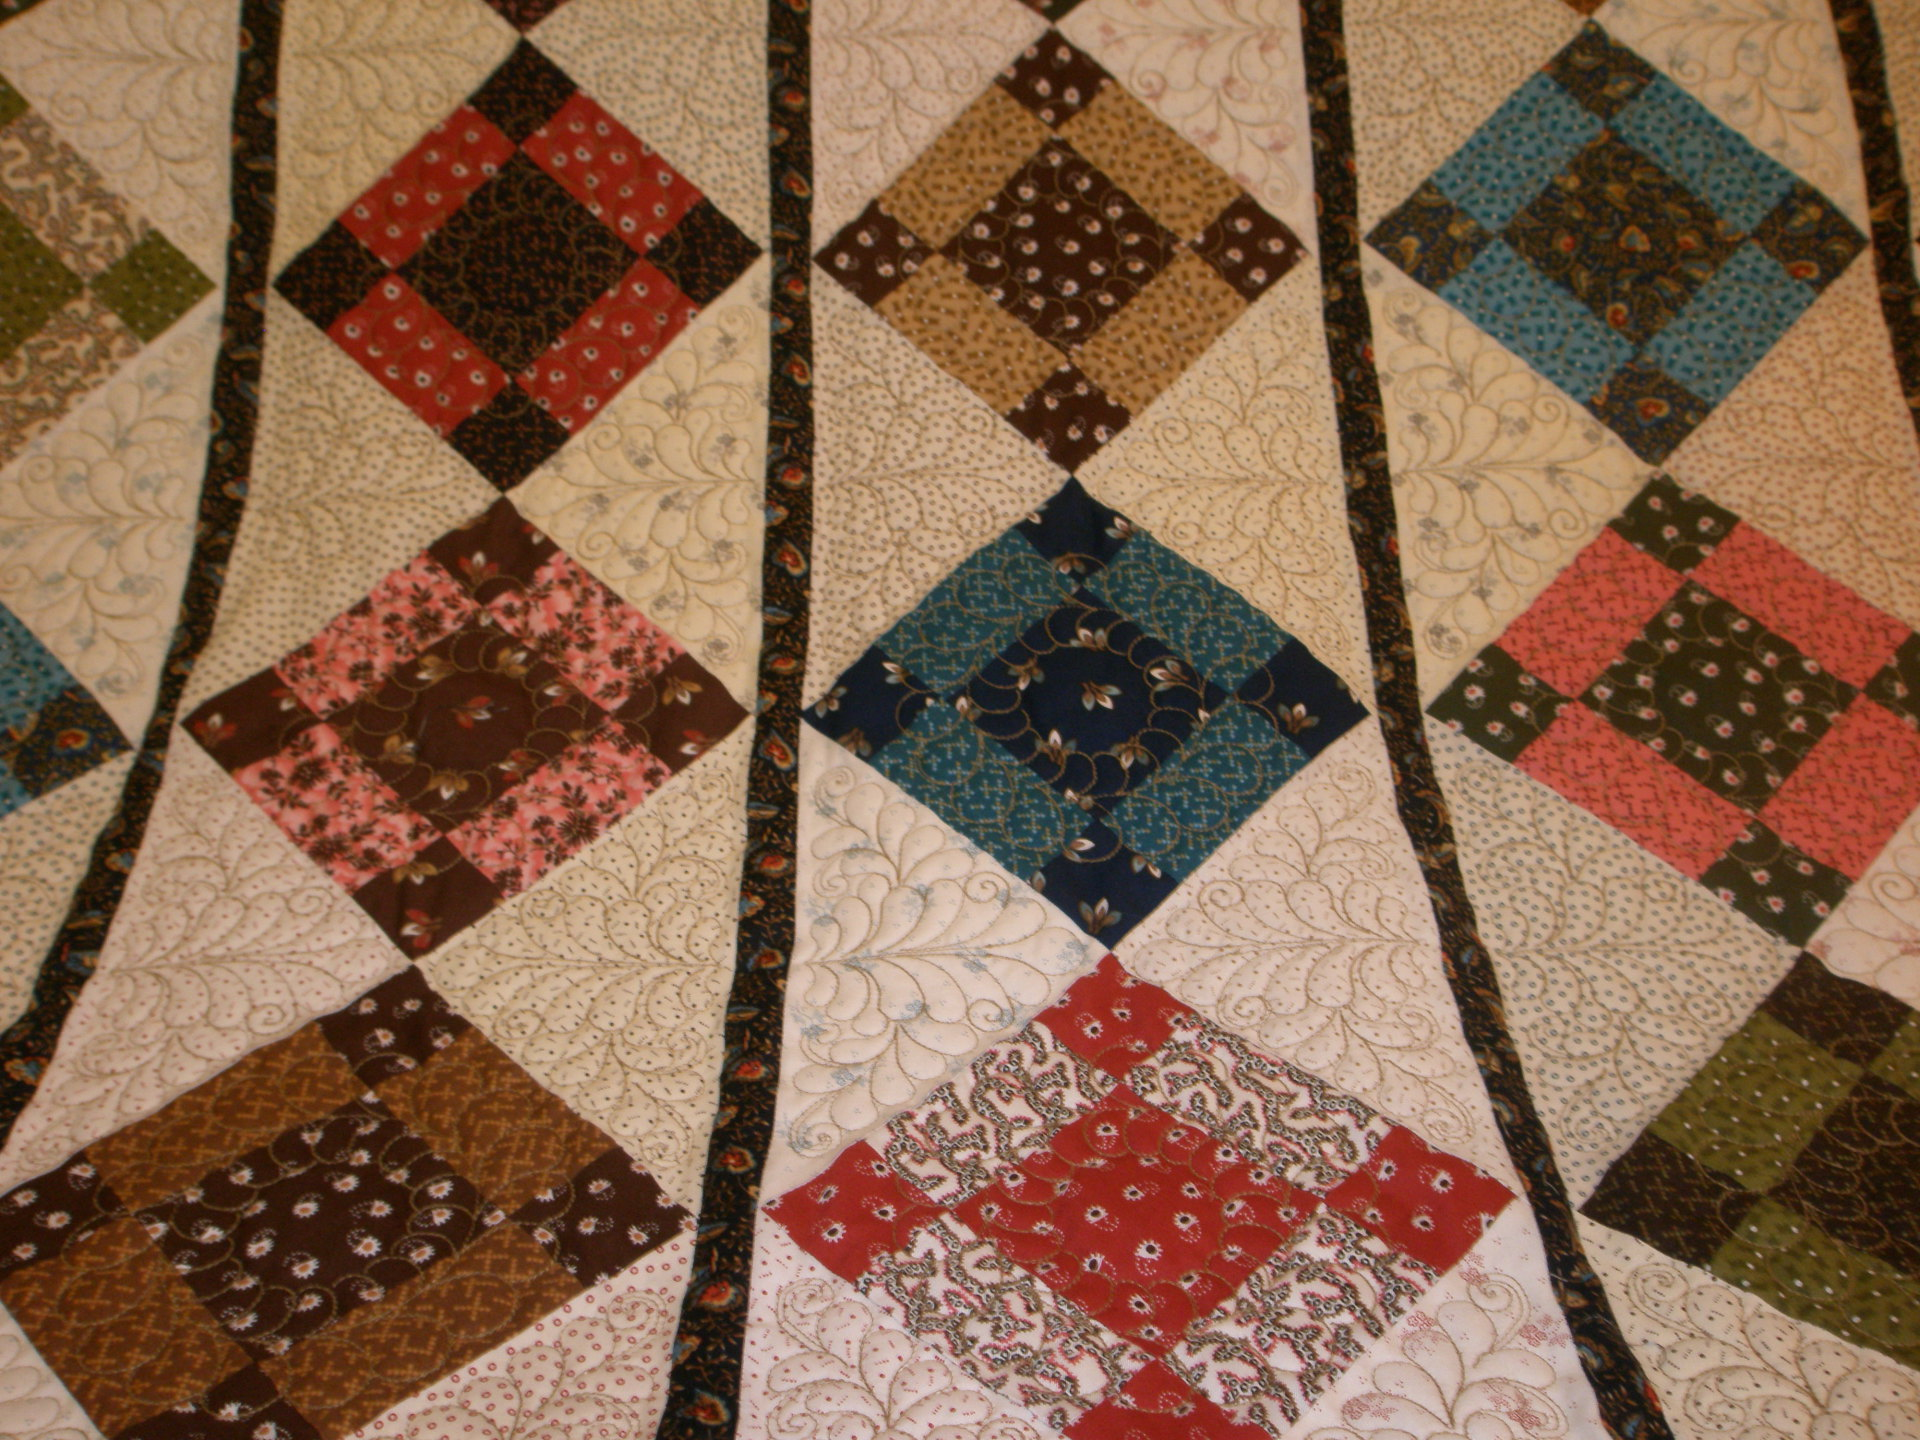 Winners At Arapahoe County Quilters 2012 Show